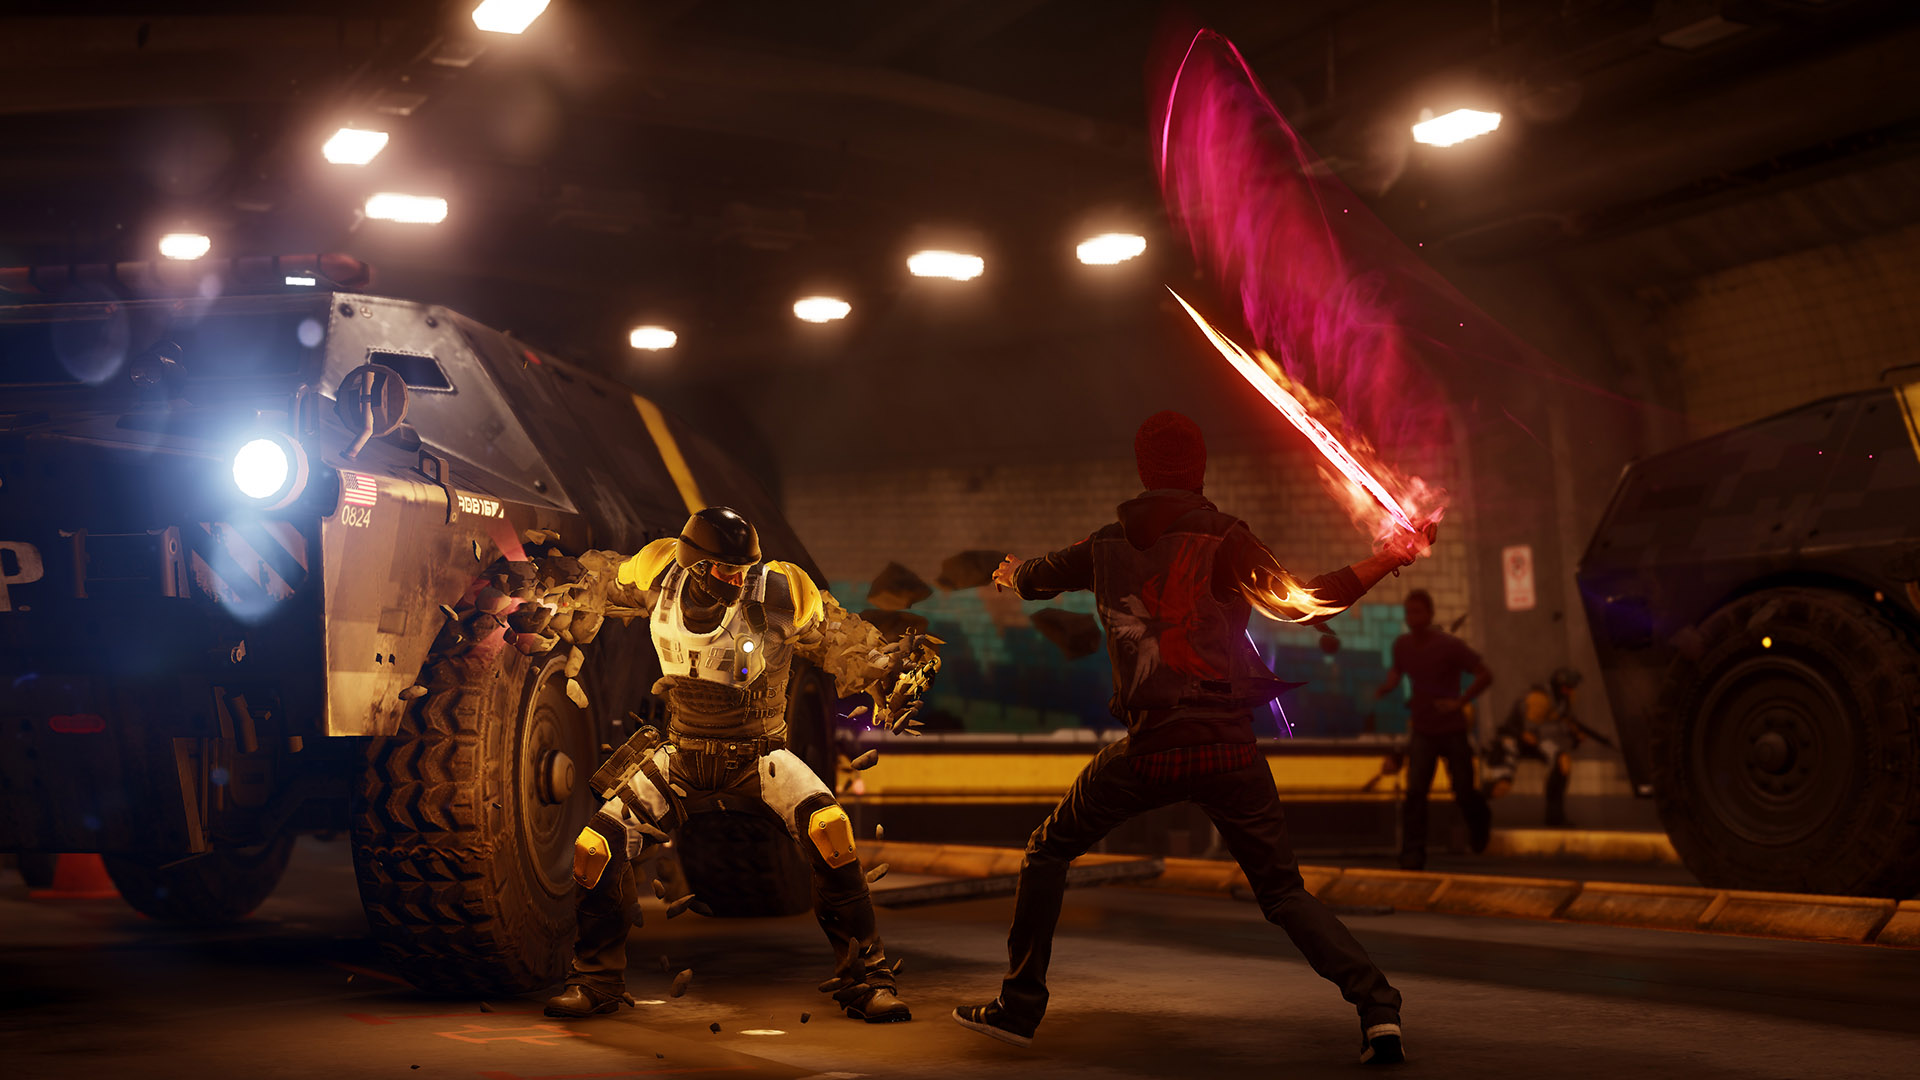 review_off_infamous2 (25)